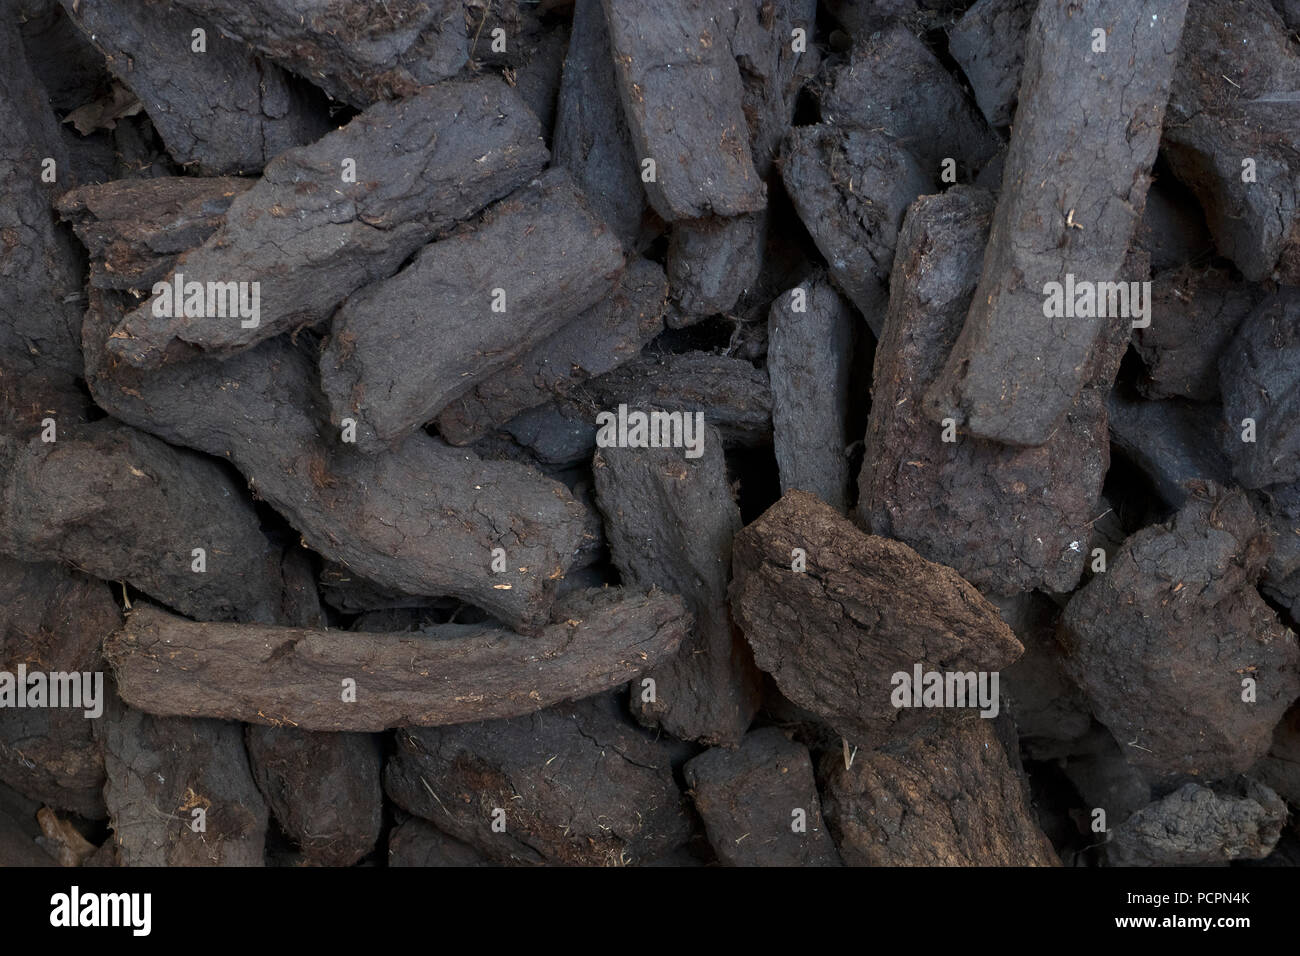 Pile of old fashioned dried peat blocks full frame closeup - Stock Image